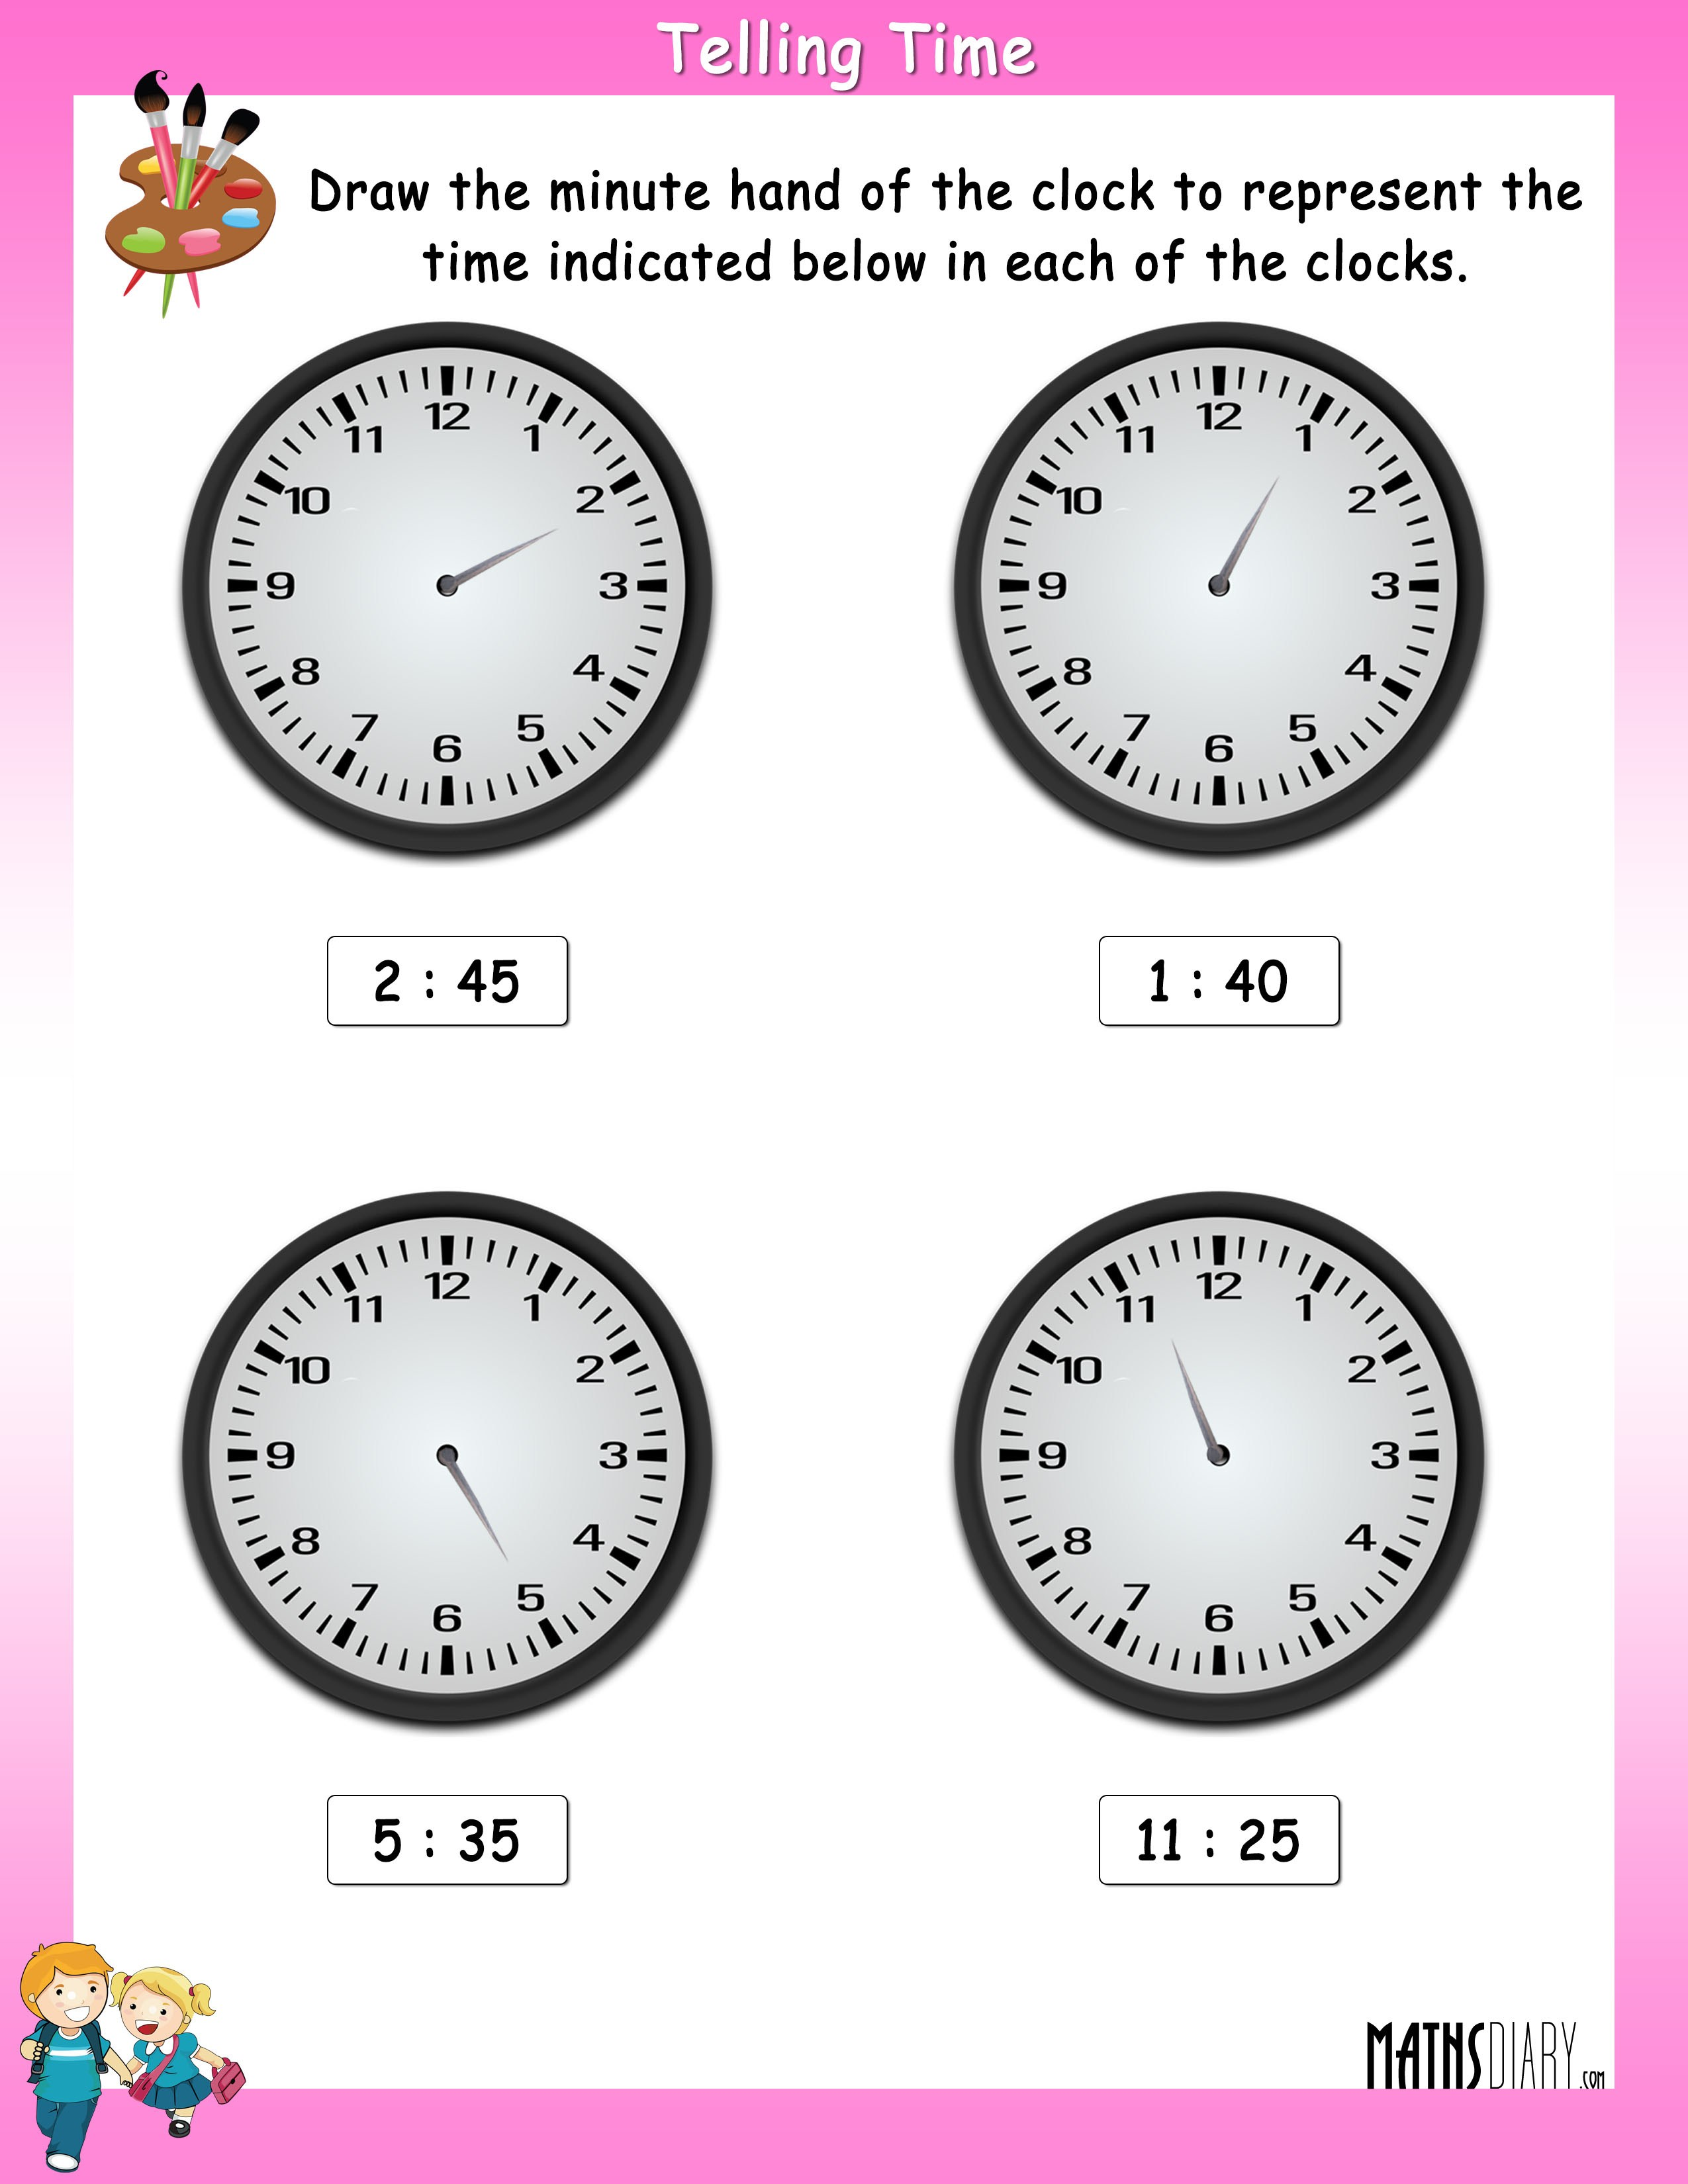 Draw The Minute Hand In The Clock To Show The Indicated